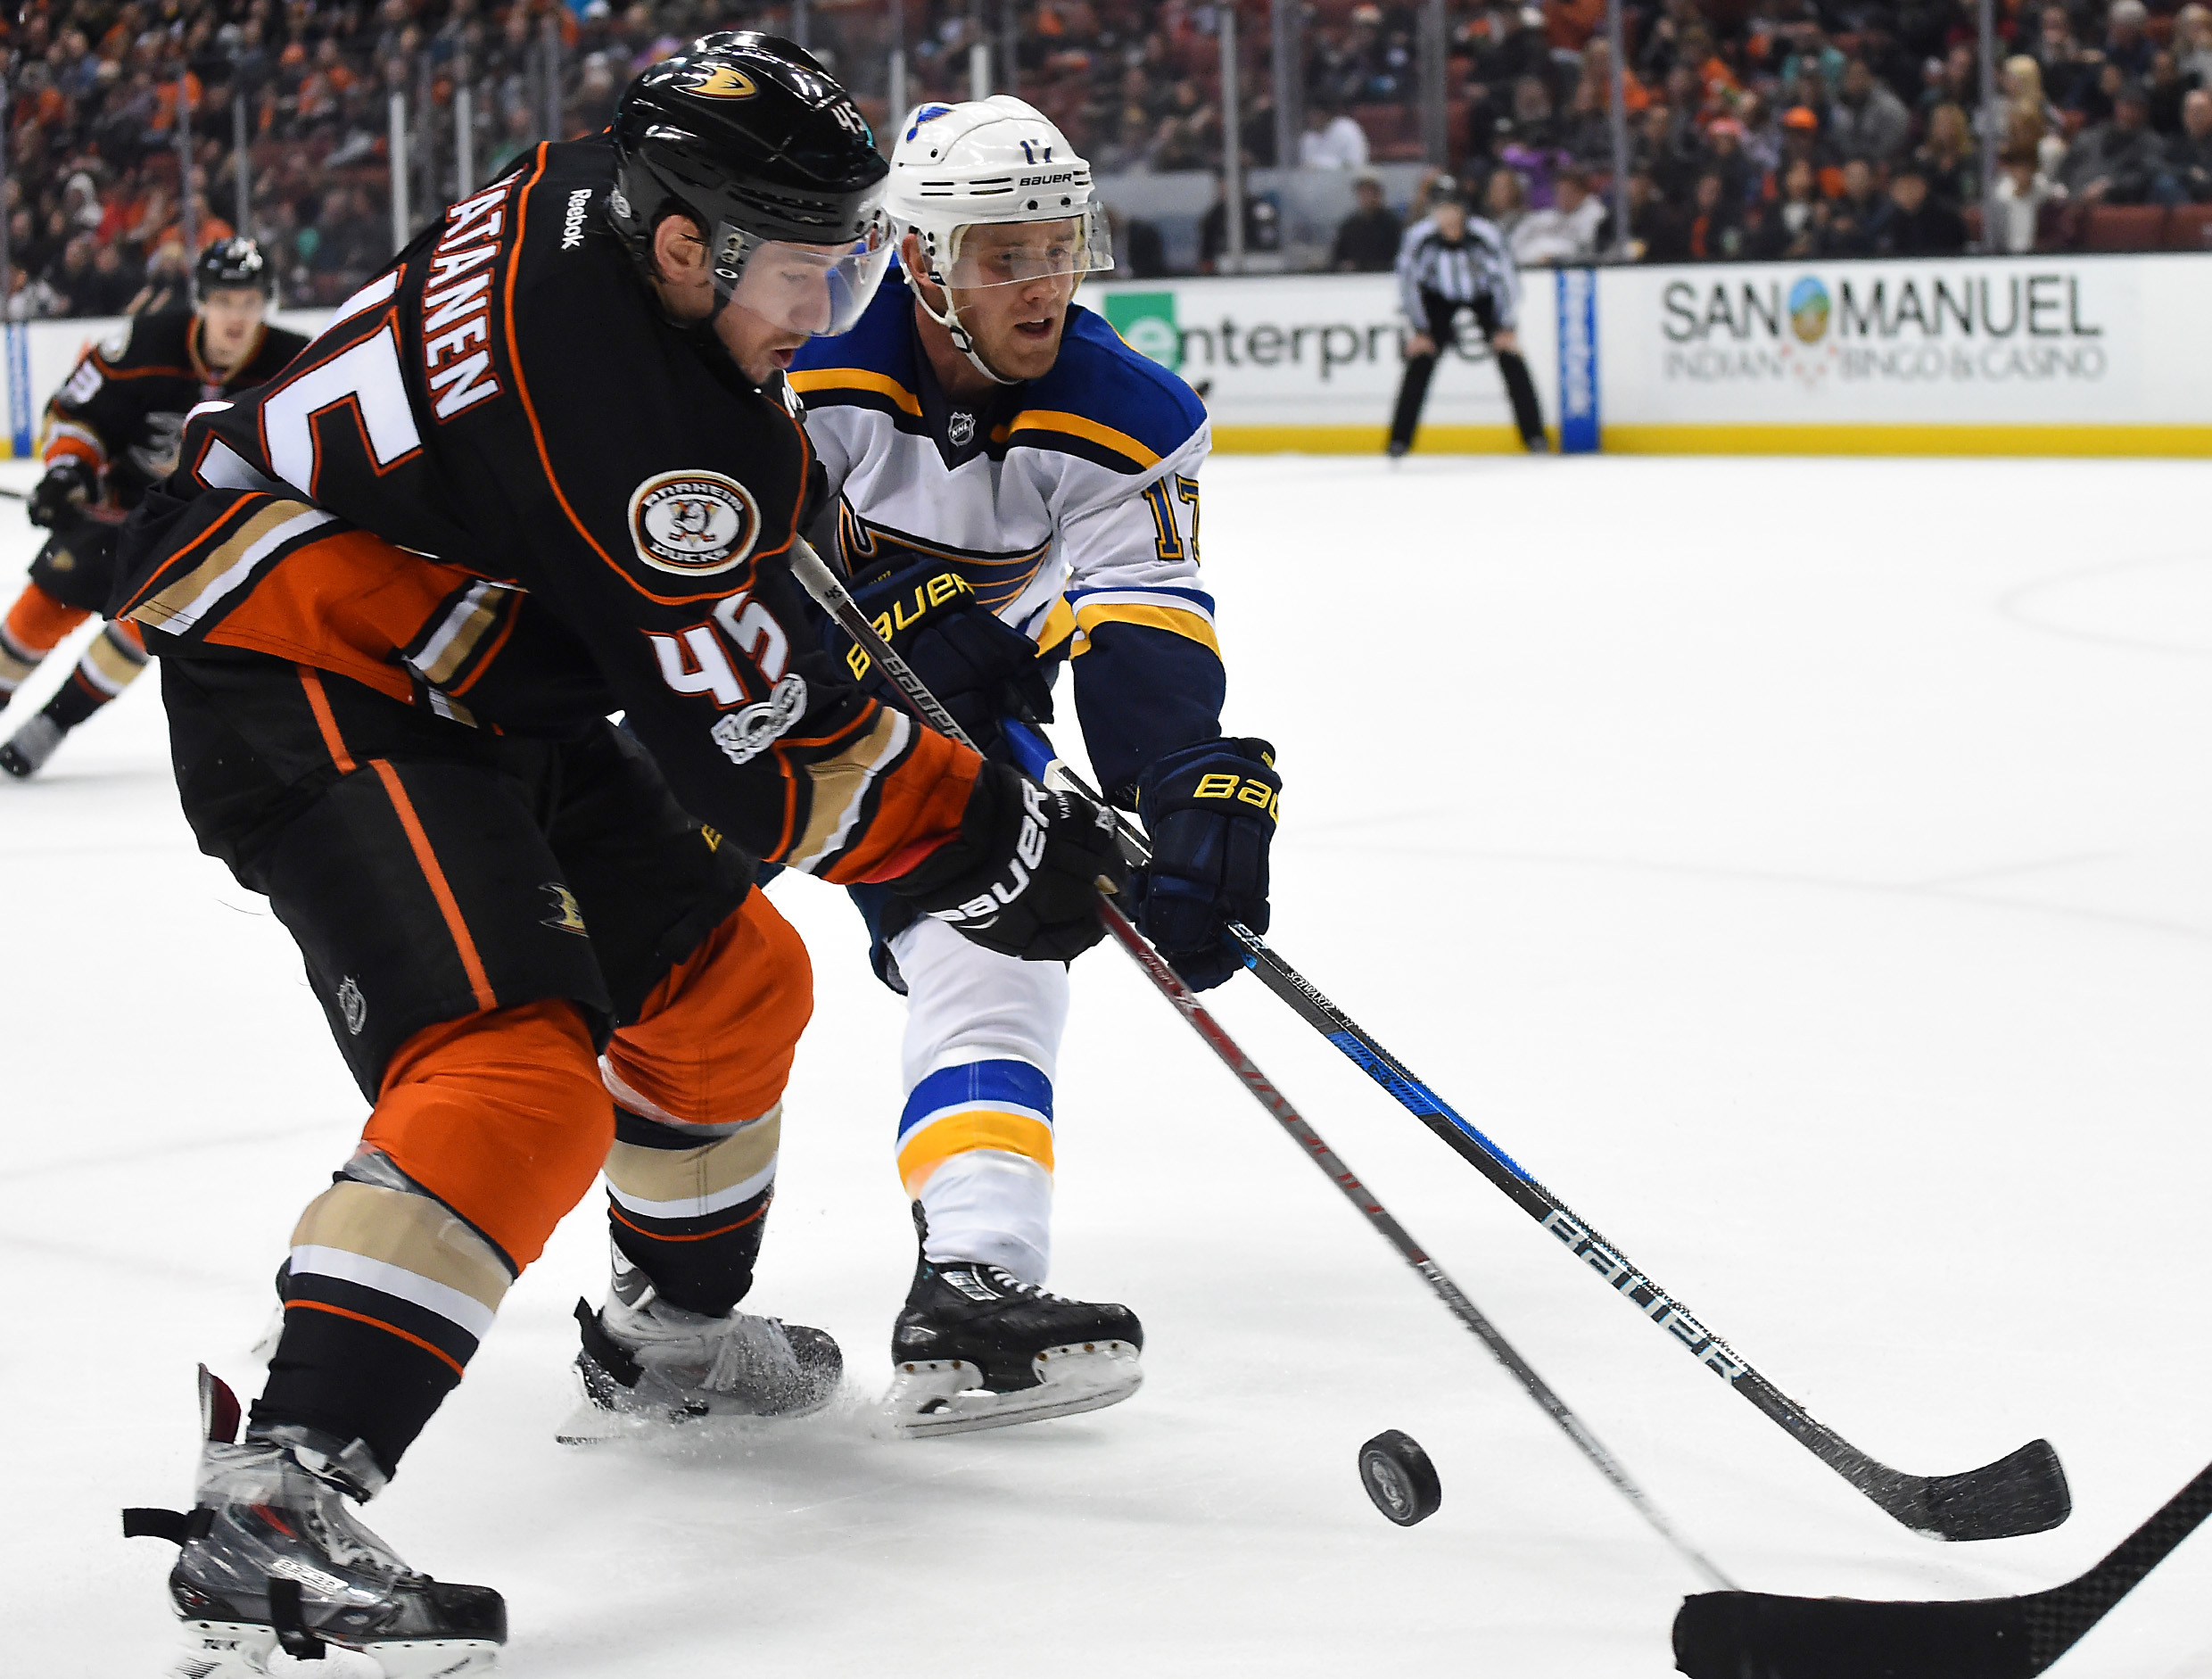 9813377-nhl-st.-louis-blues-at-anaheim-ducks